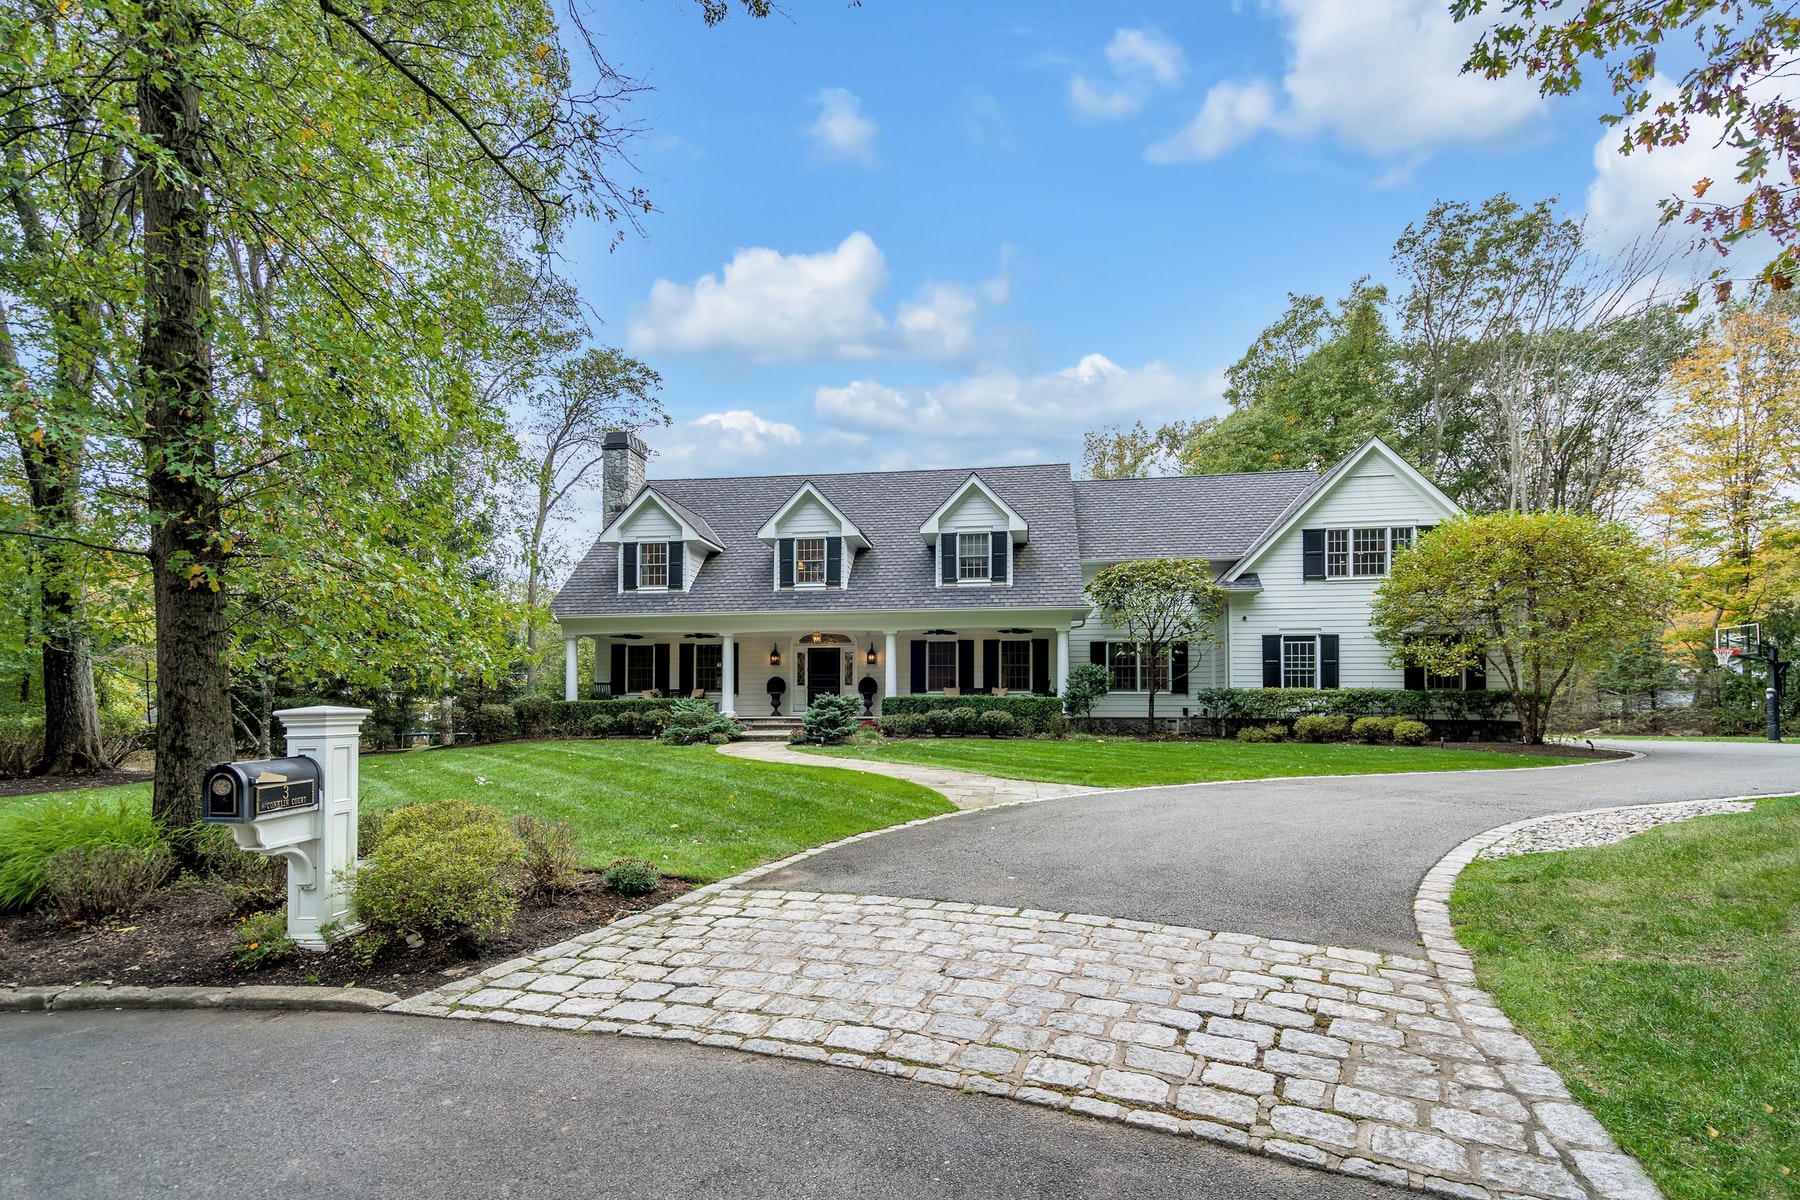 Single Family Homes for Active at Sophisticated and Stunning! 3 Conklin Court Allendale, New Jersey 07401 United States